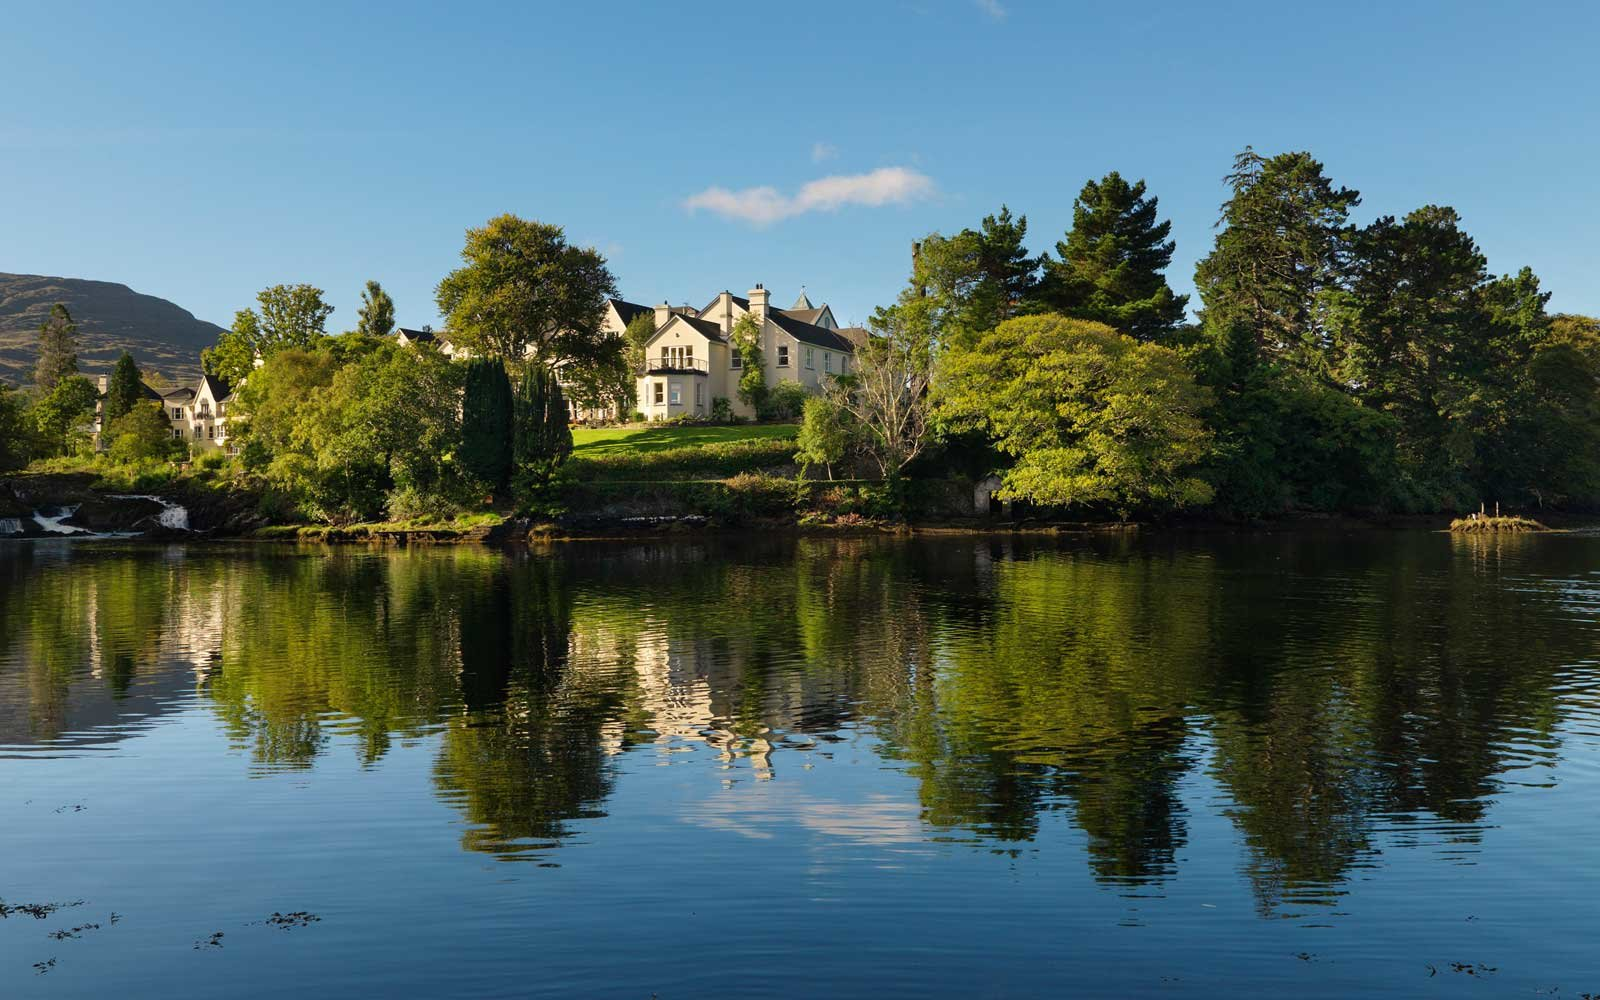 View of Sheen Falls Lodge in Ireland